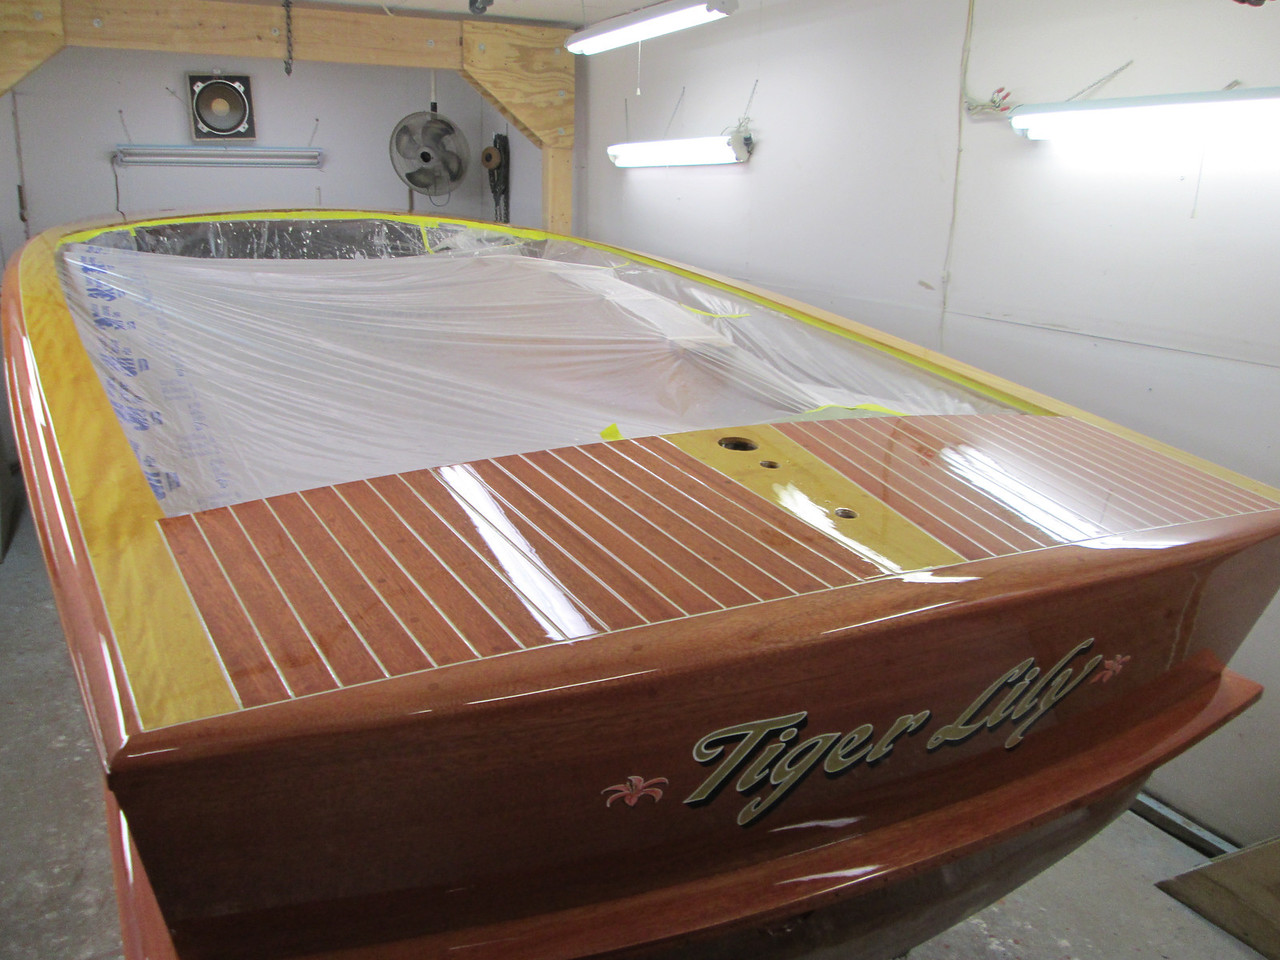 Starboard rear view of deck seams installed with the first coat of varnish over the seams.